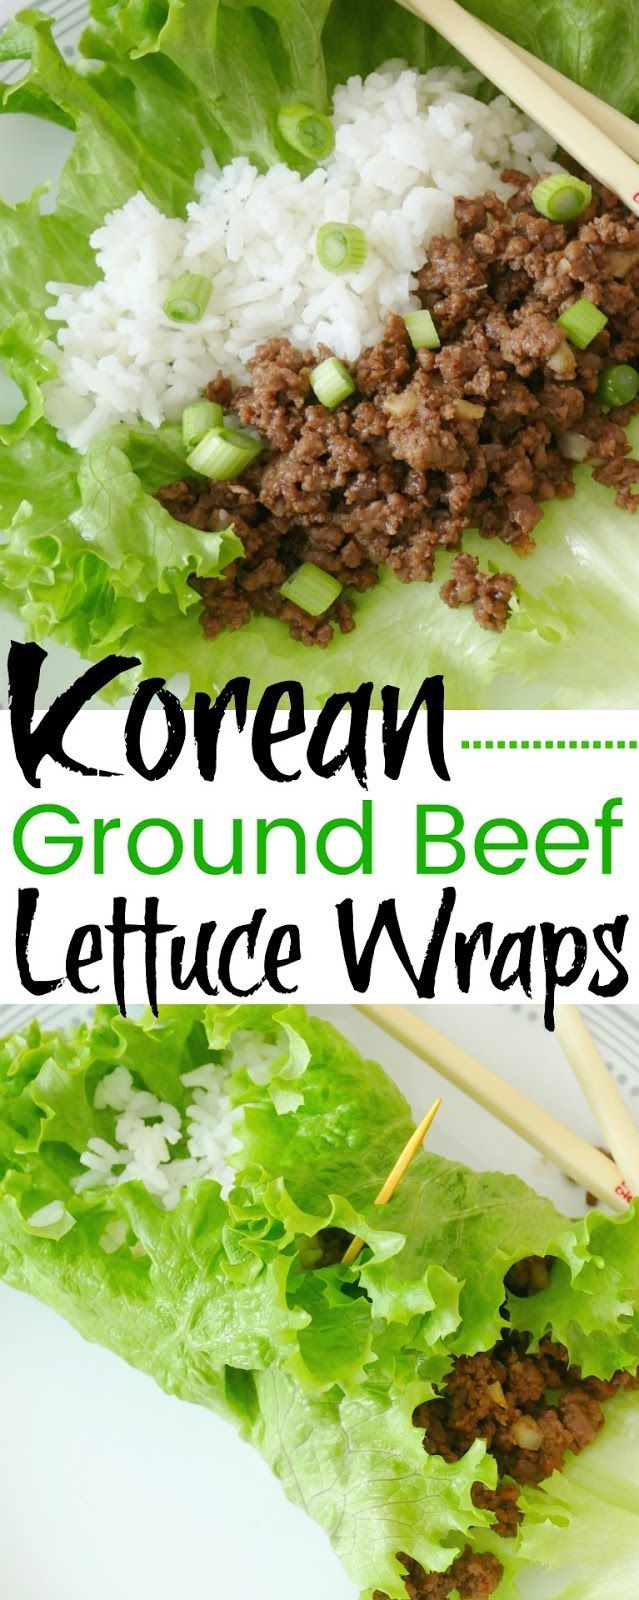 Korean Ground Beef And Rice Lettuce Wraps Recipe Recipe In 2020 Korean Ground Beef Wrap Recipes Lettuce Wrap Recipes